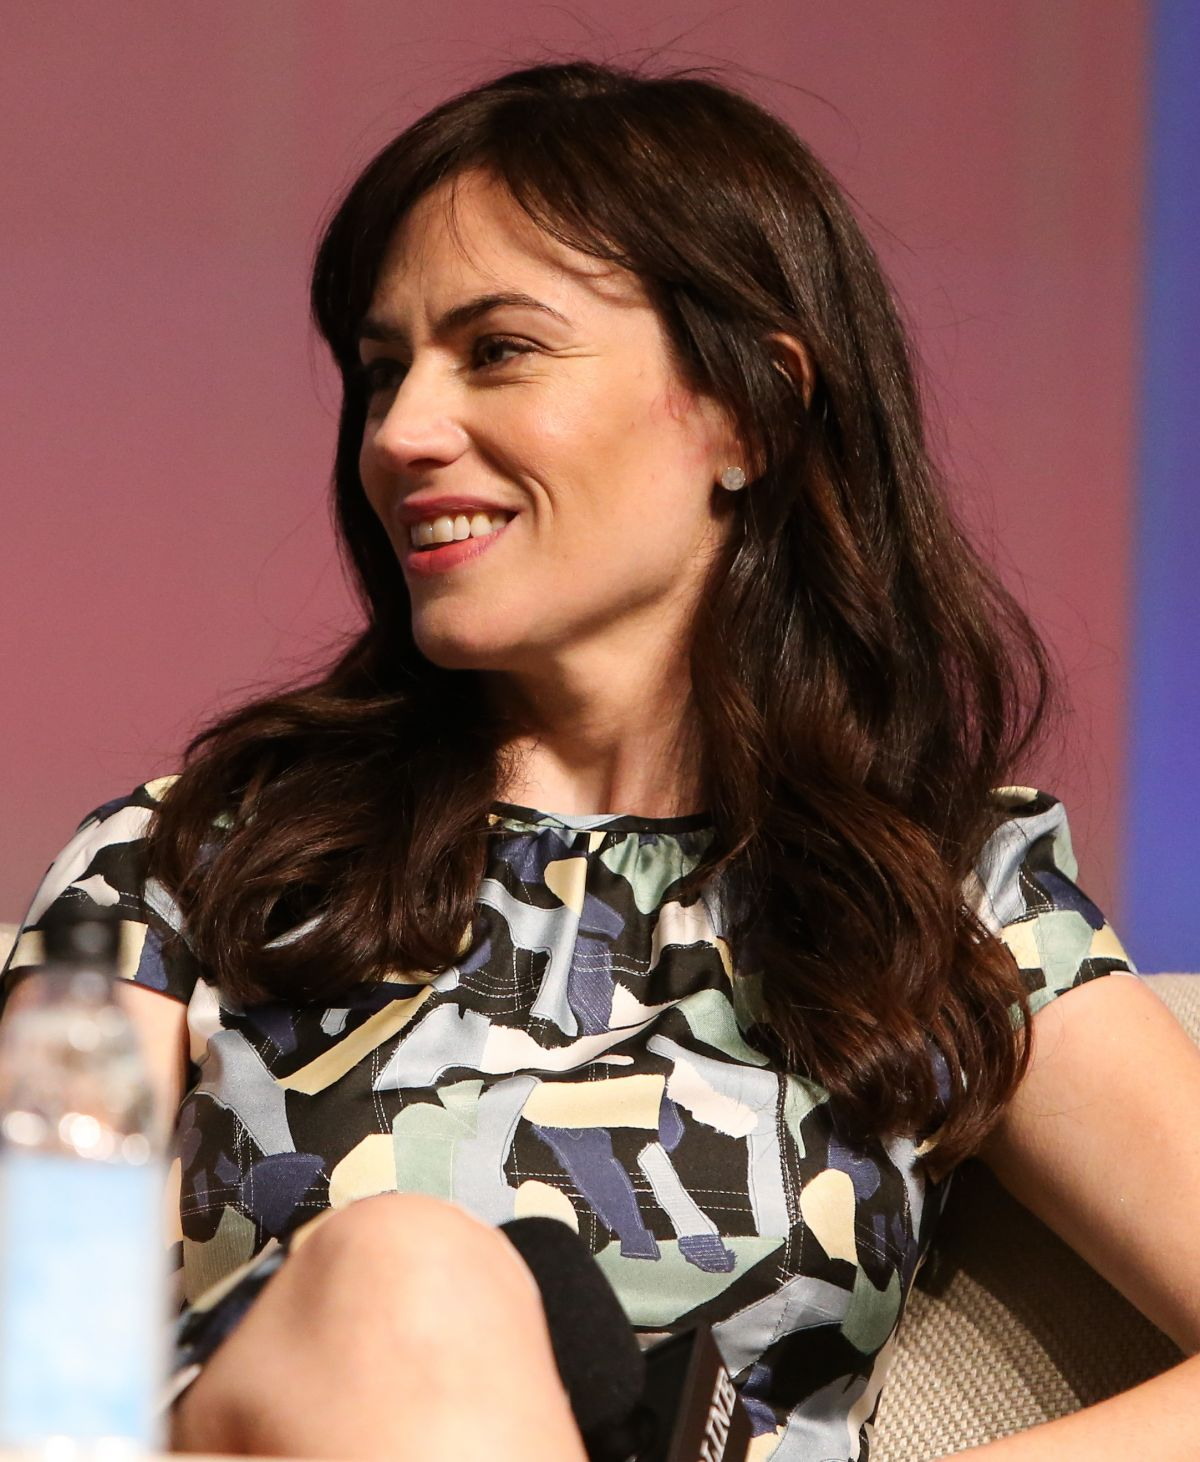 MAGGIE SIFF at Contenders Emmys Presented by Deadline in Los Angeles 04/09/2017